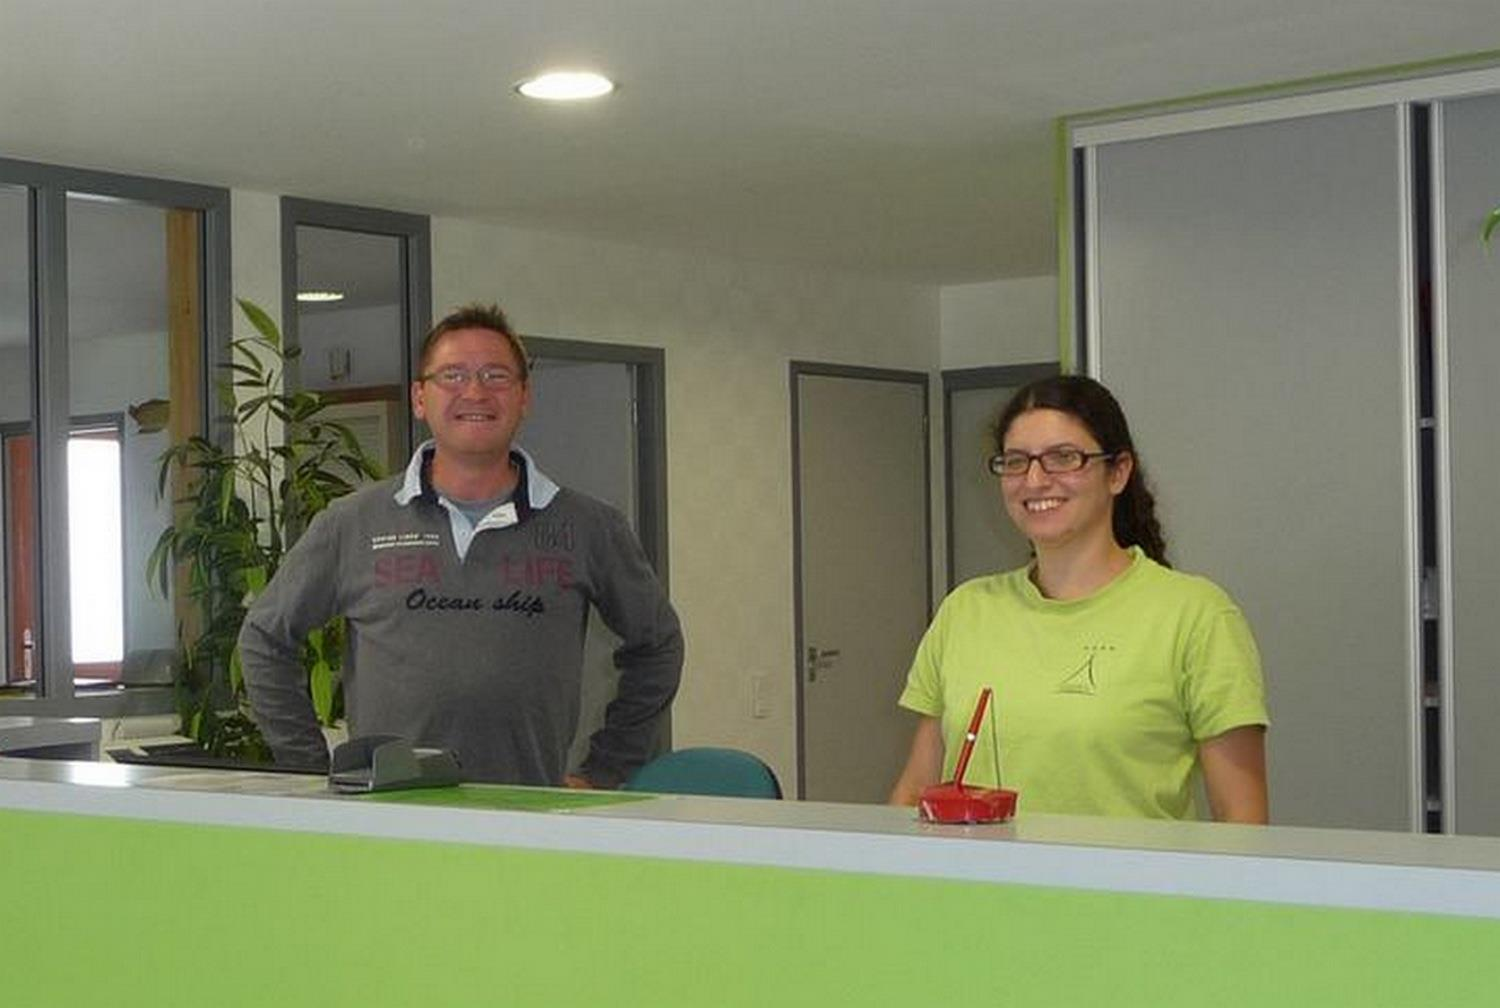 Reception team Camping Sites et Paysages DE PENBOCH - ARRADON